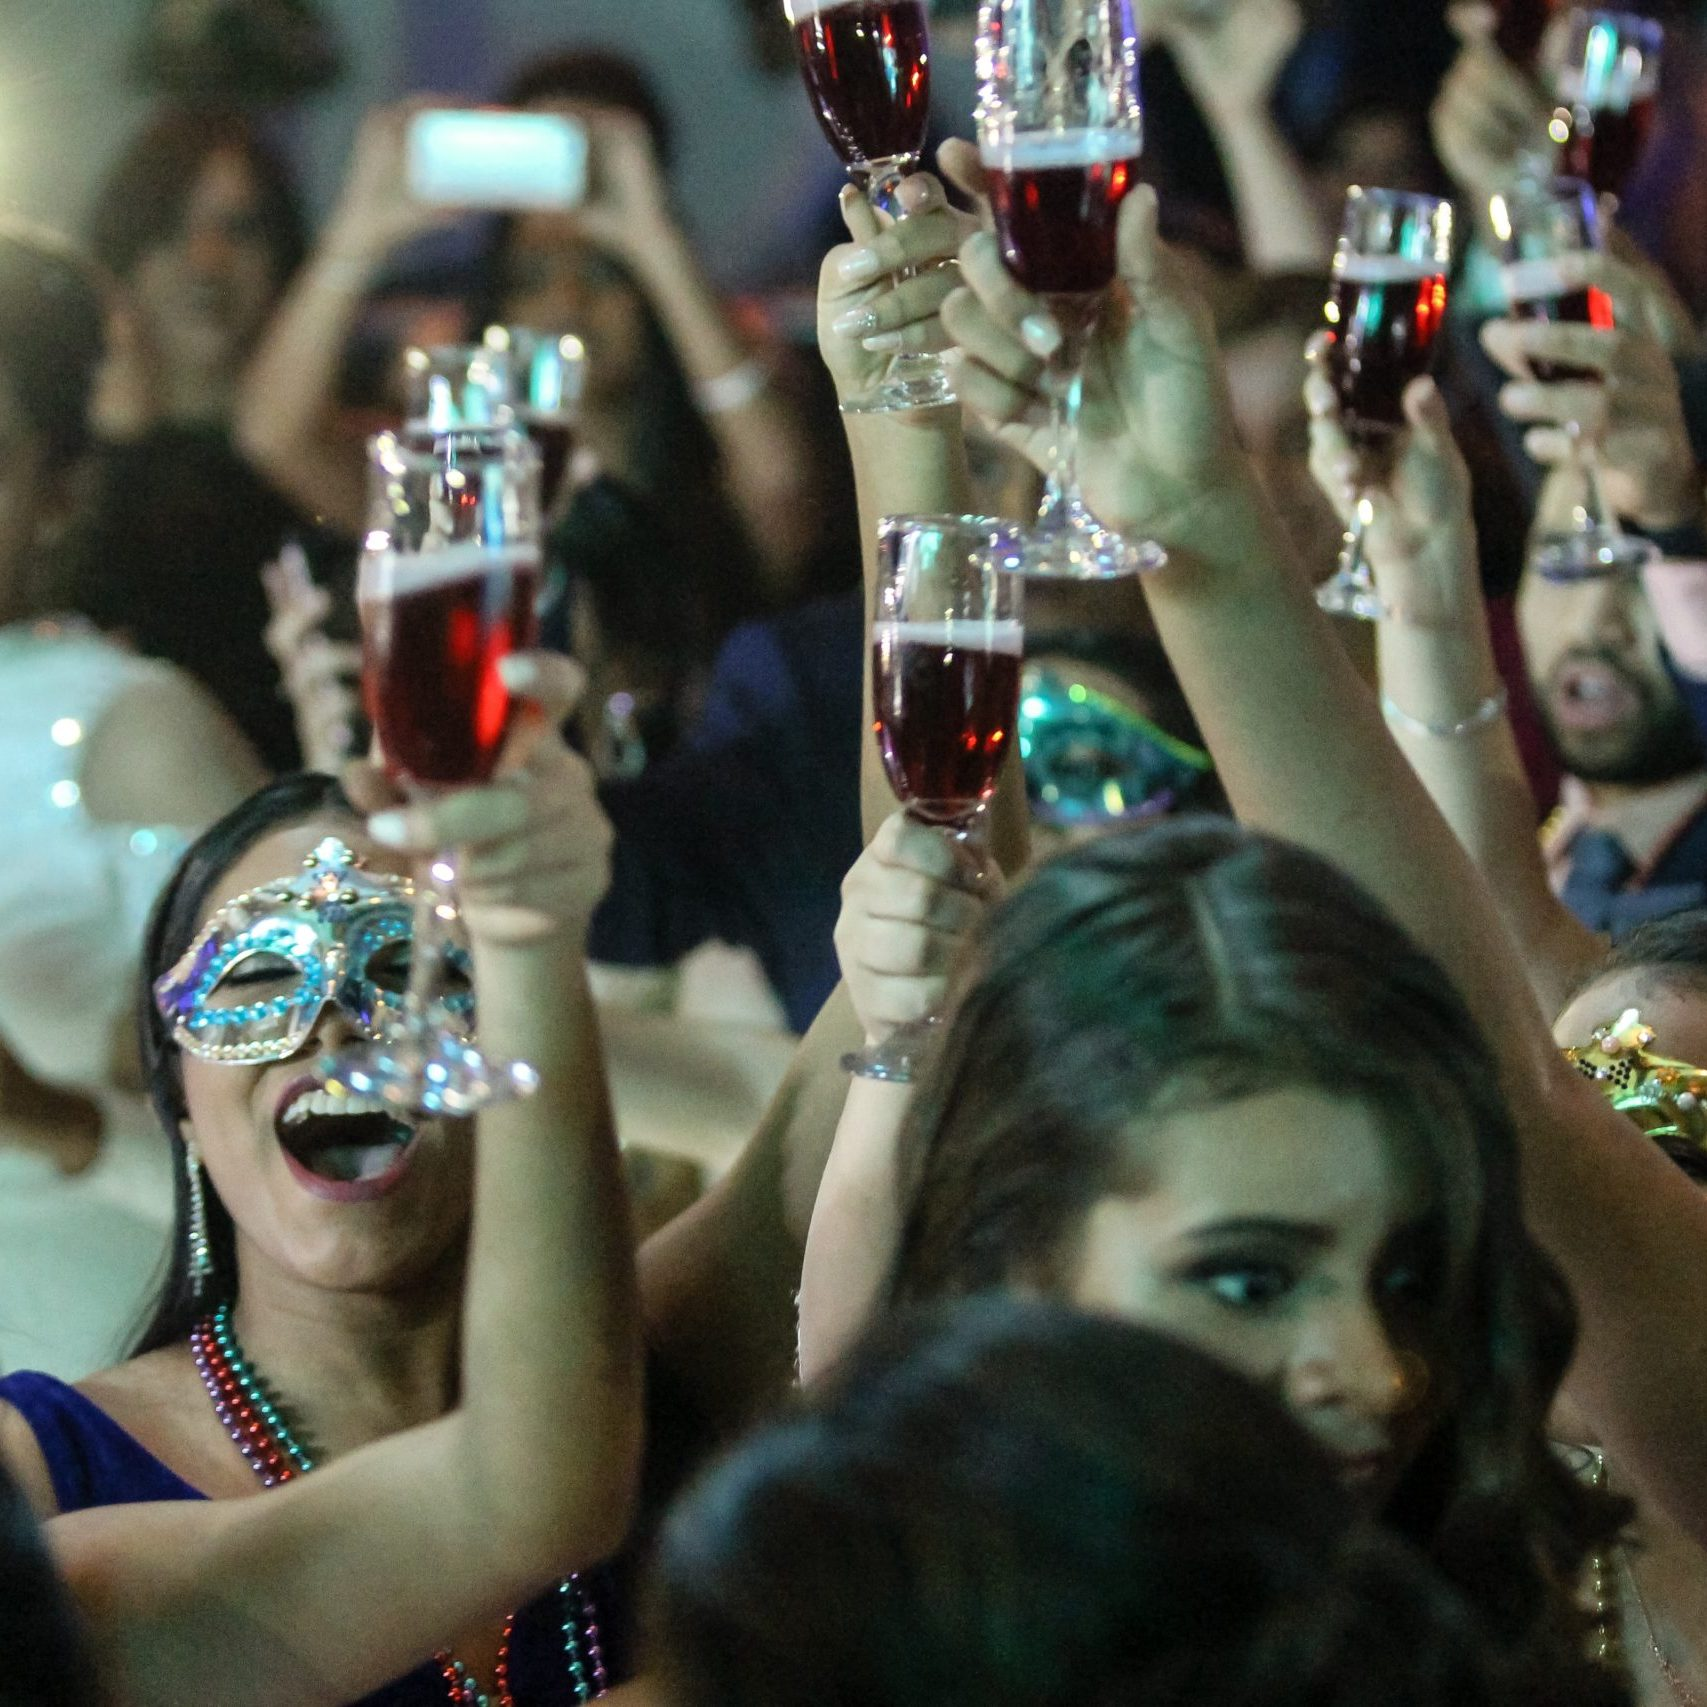 Event reviews category with people in masks at a party with champagne